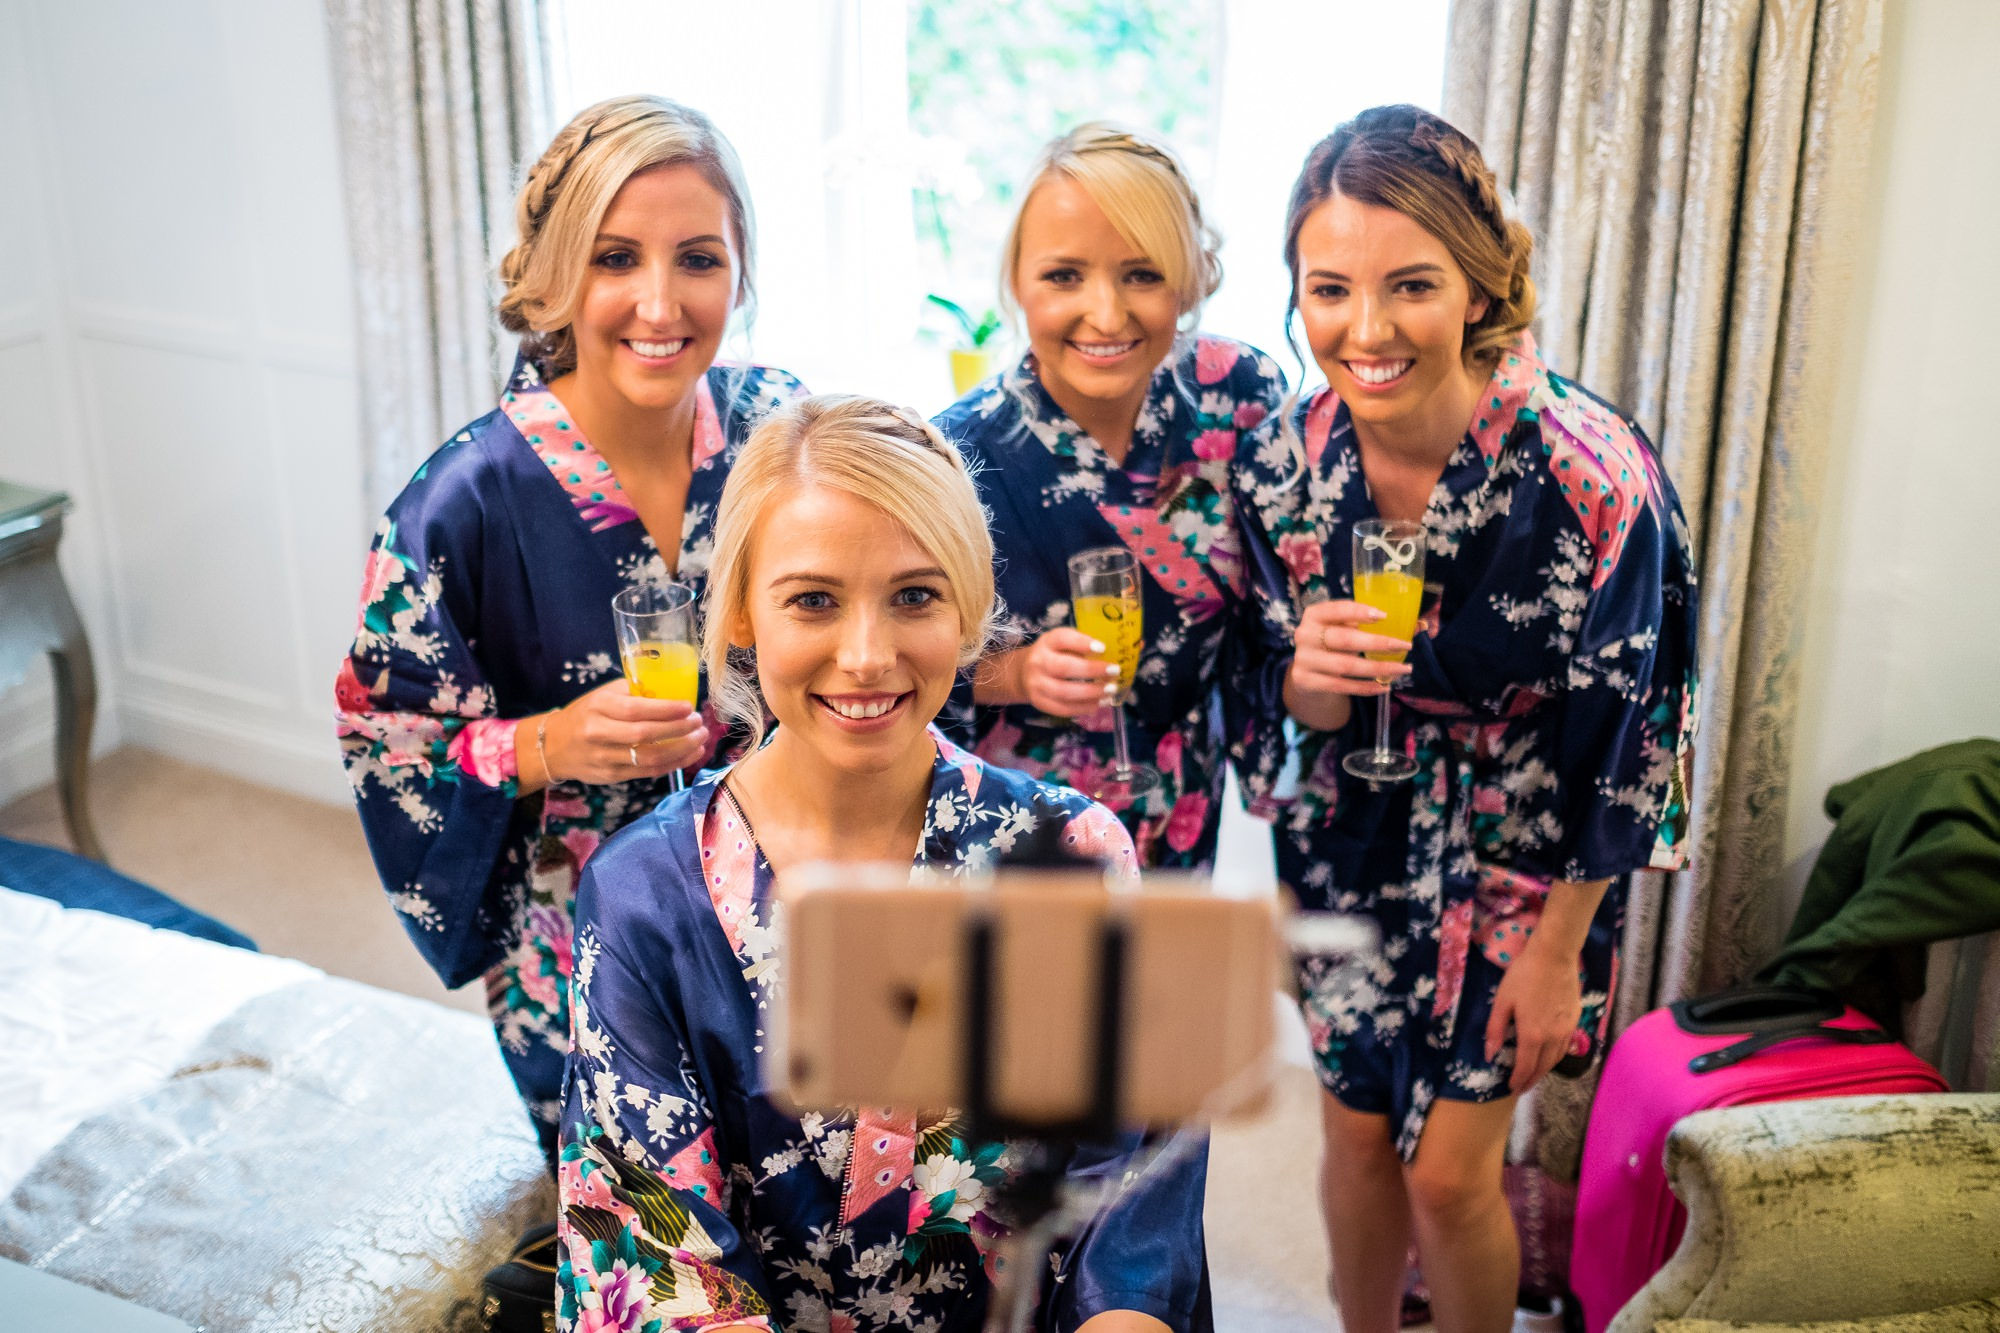 bridesmaids doing a selfie